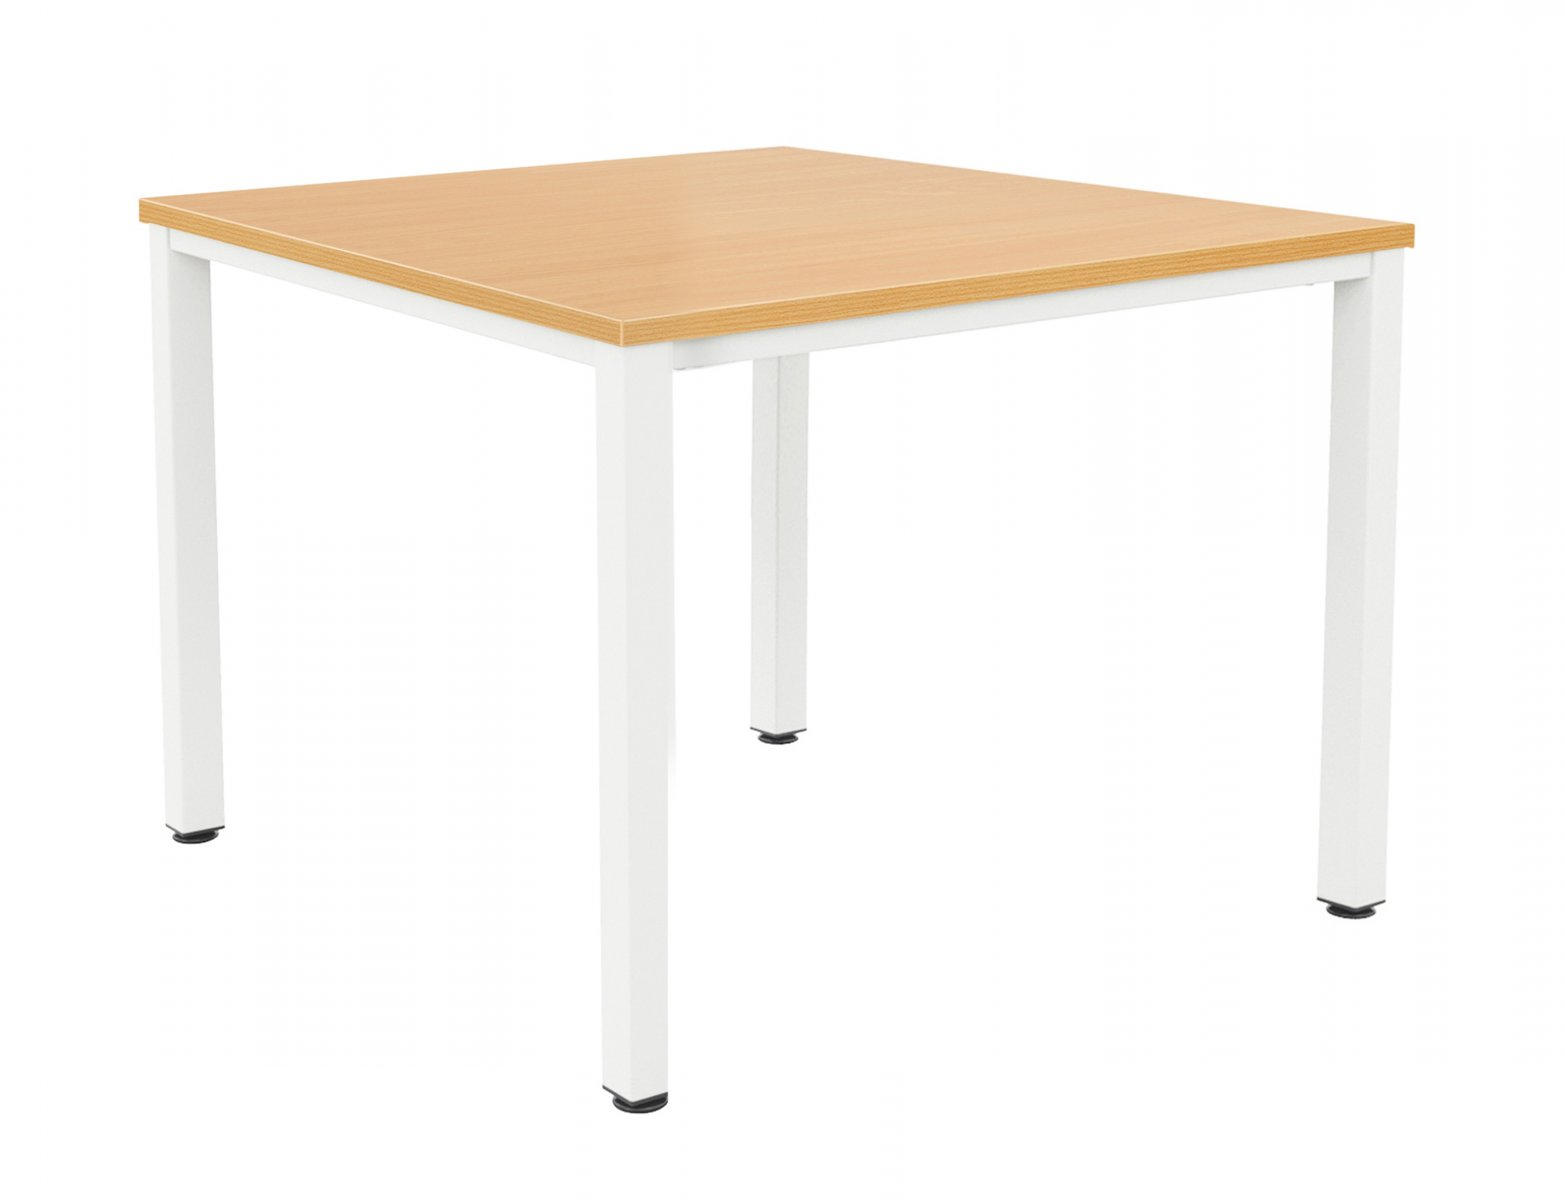 Fraction Infinity 120 x 120 Meeting Table - Beech with White Legs